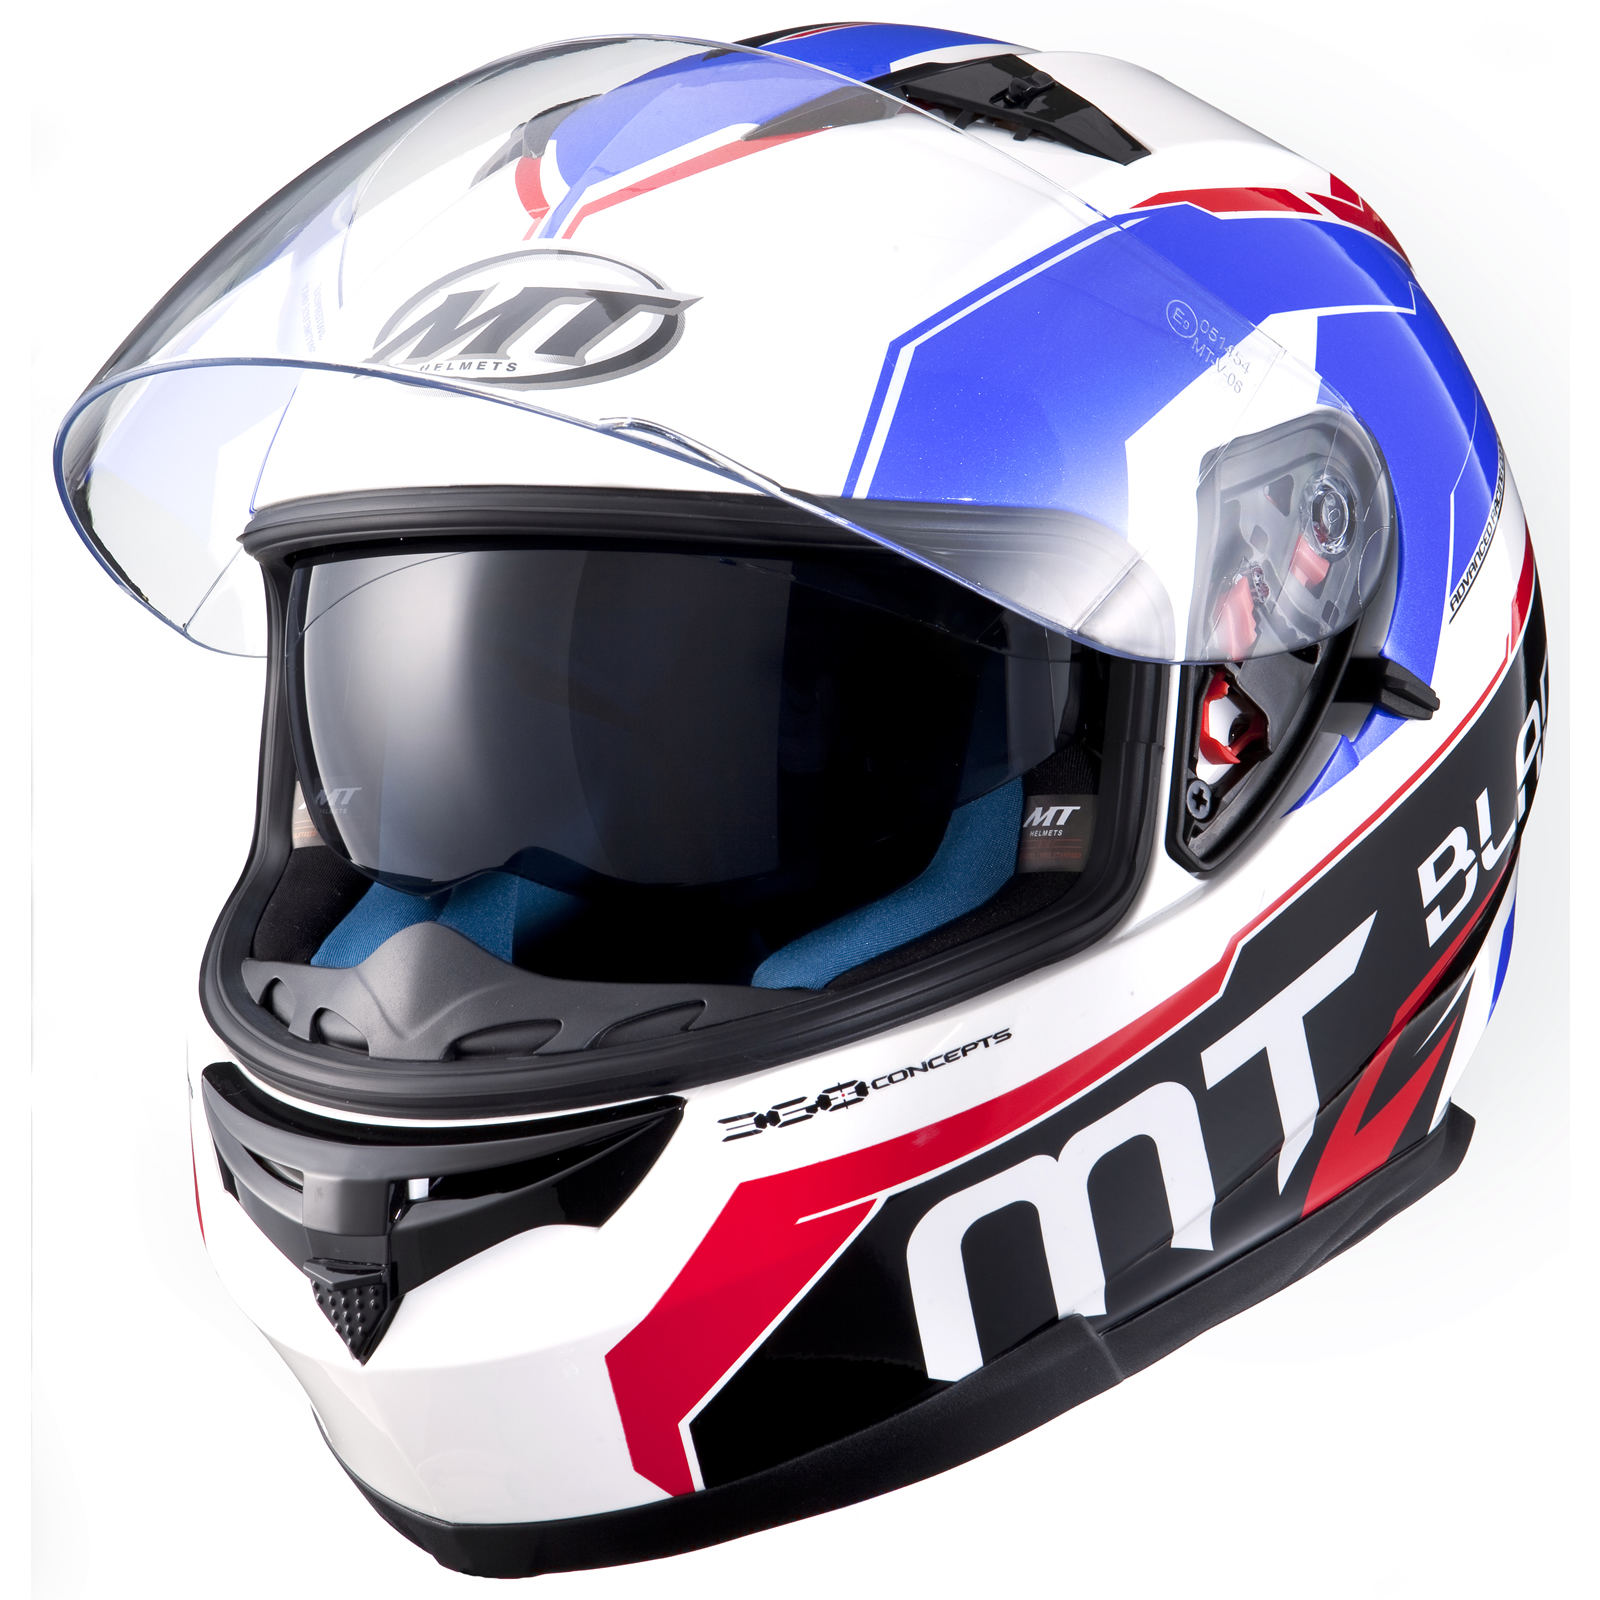 10679 MT Blade SV SuperR Motorcycle Helmet Blue Red White 1600 2